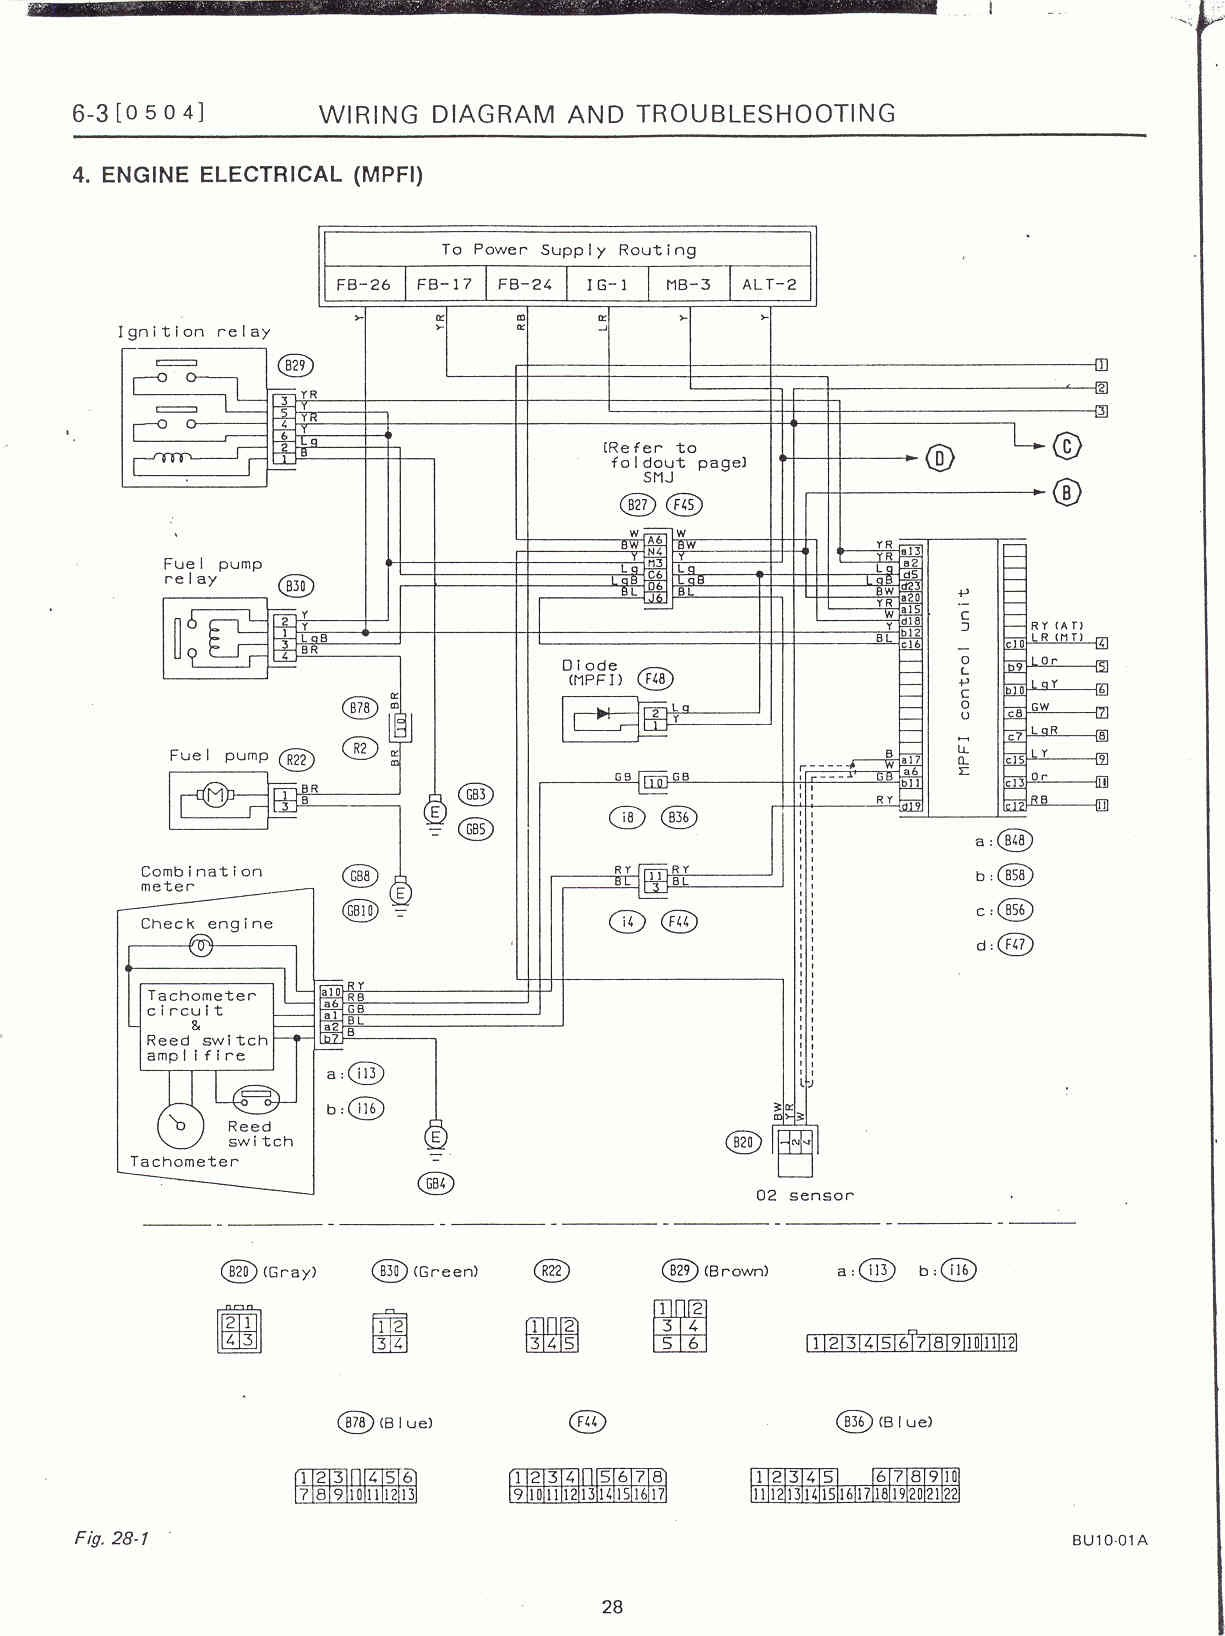 2001 subaru outback exhaust system diagram spotlight wiring for hilux 2002 engine